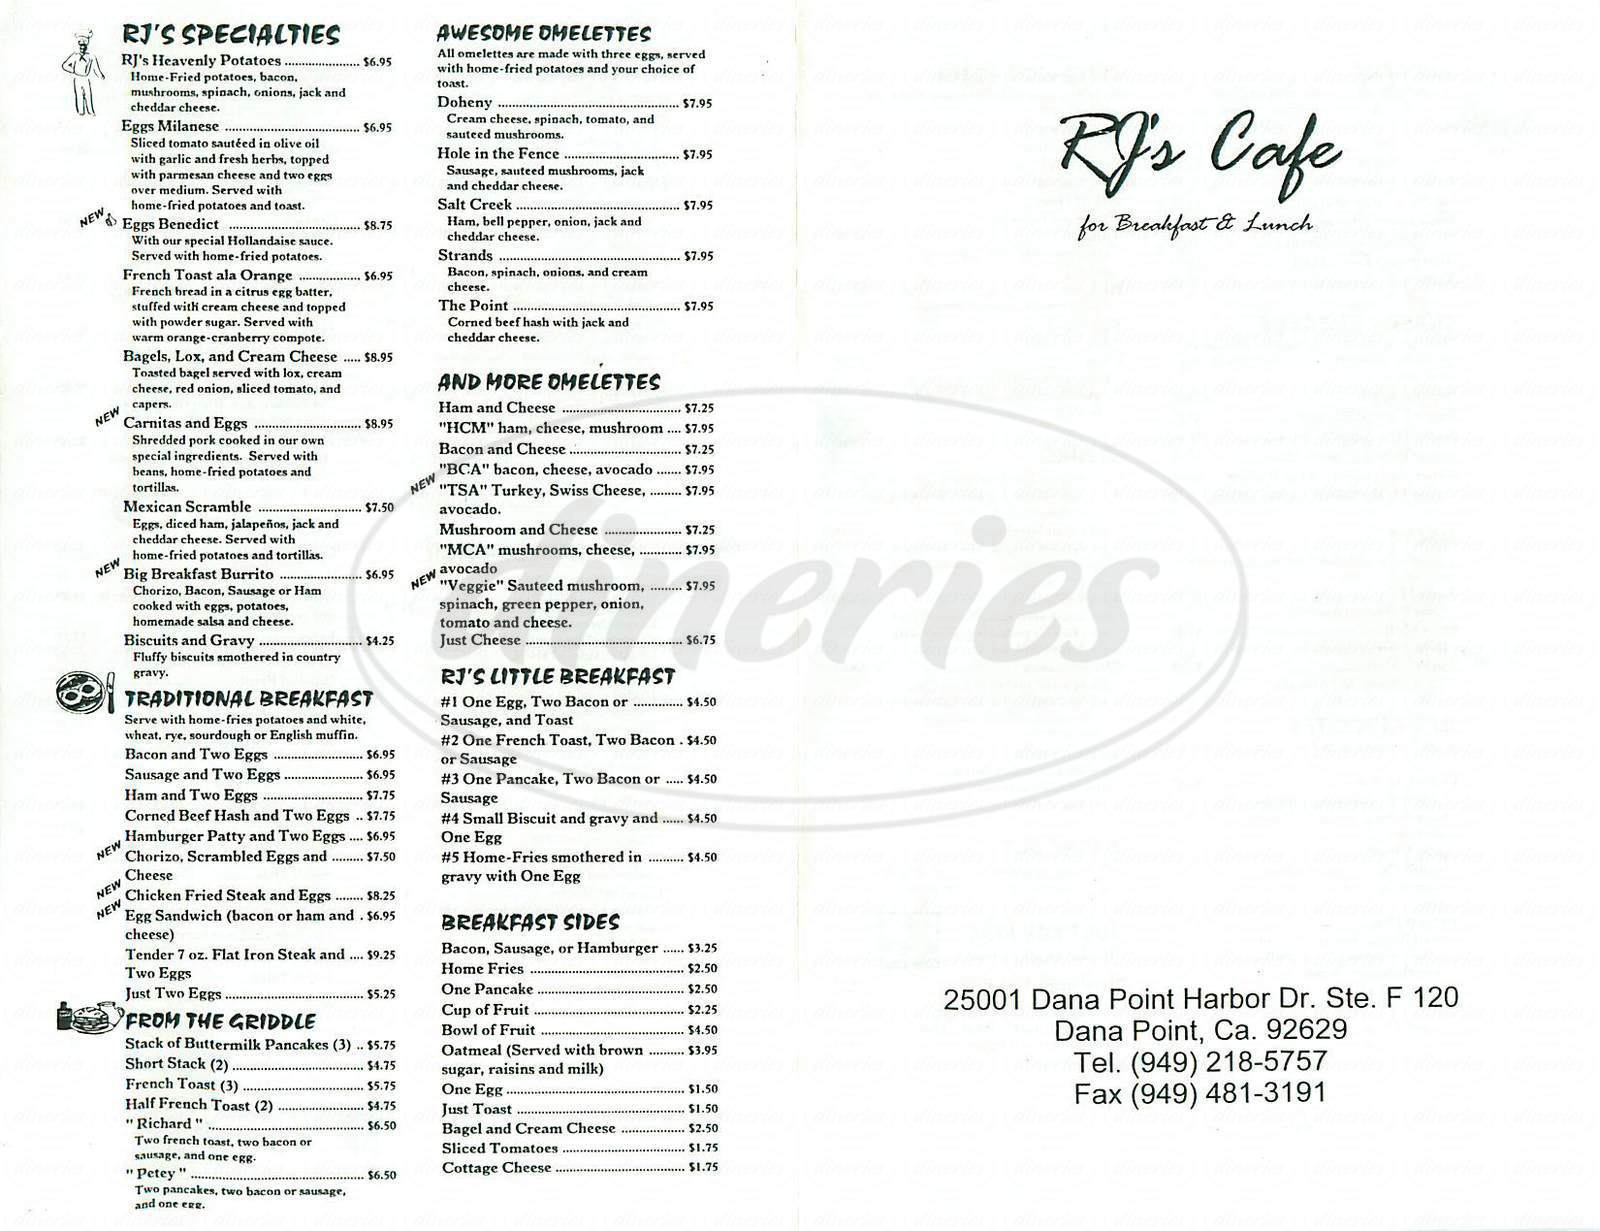 menu for RJ's Café